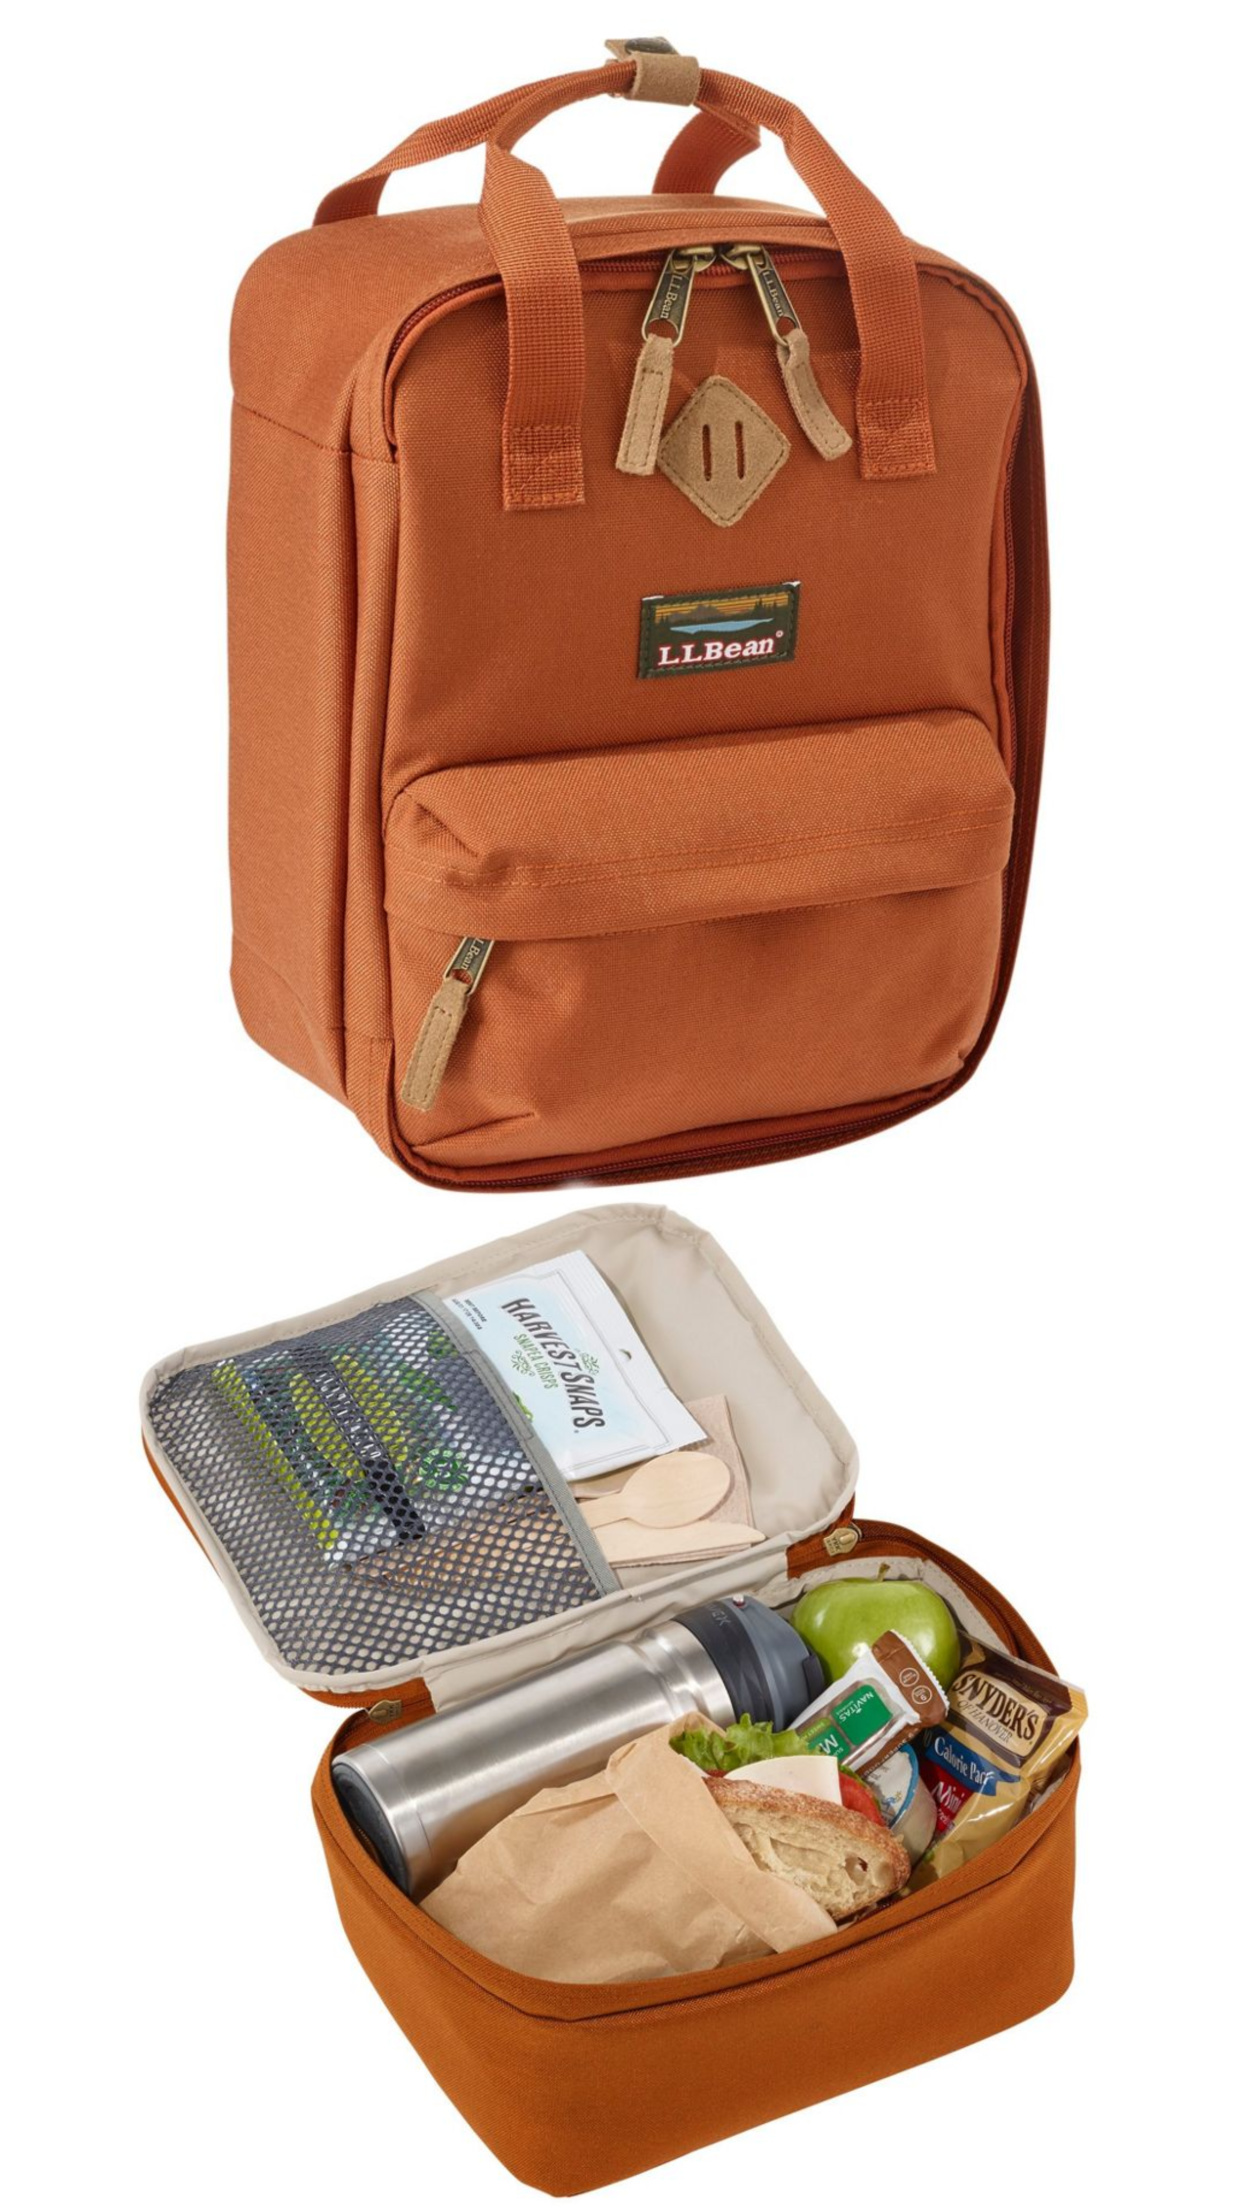 The best insulated lunch bags for school: LL Bean adult lunch bag